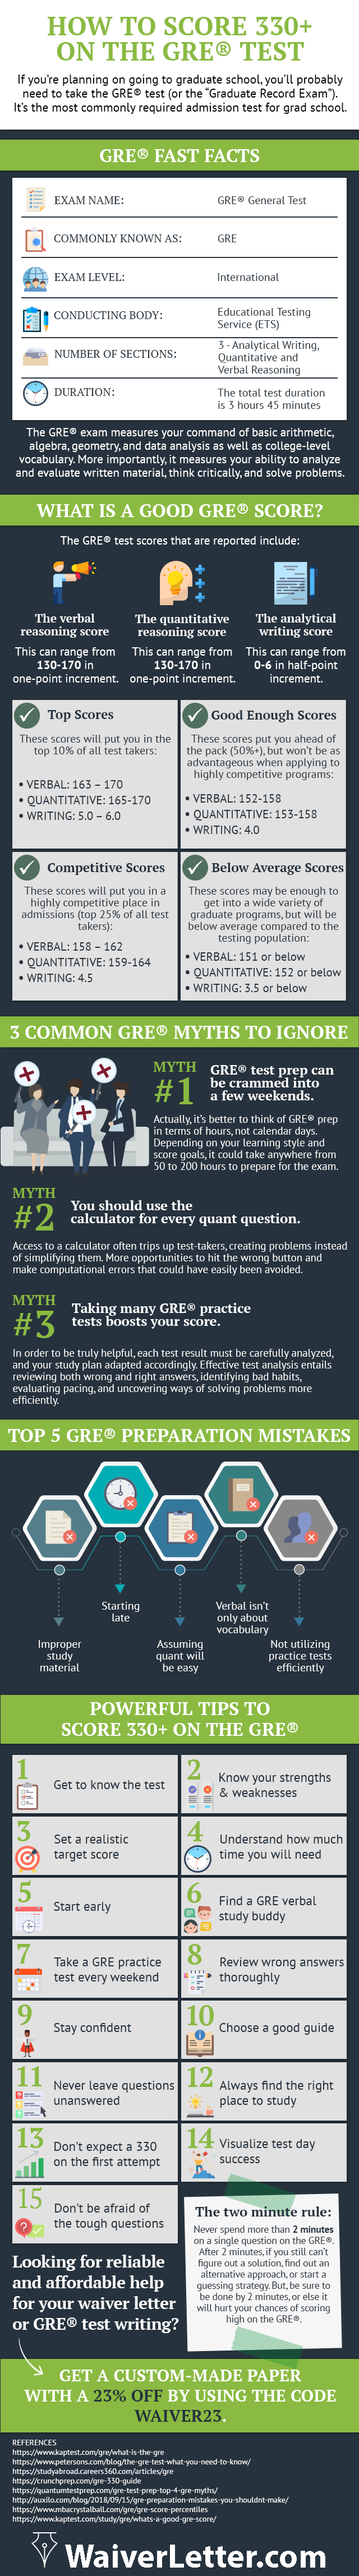 How to score 330+ ON The Gre Test #infographic.